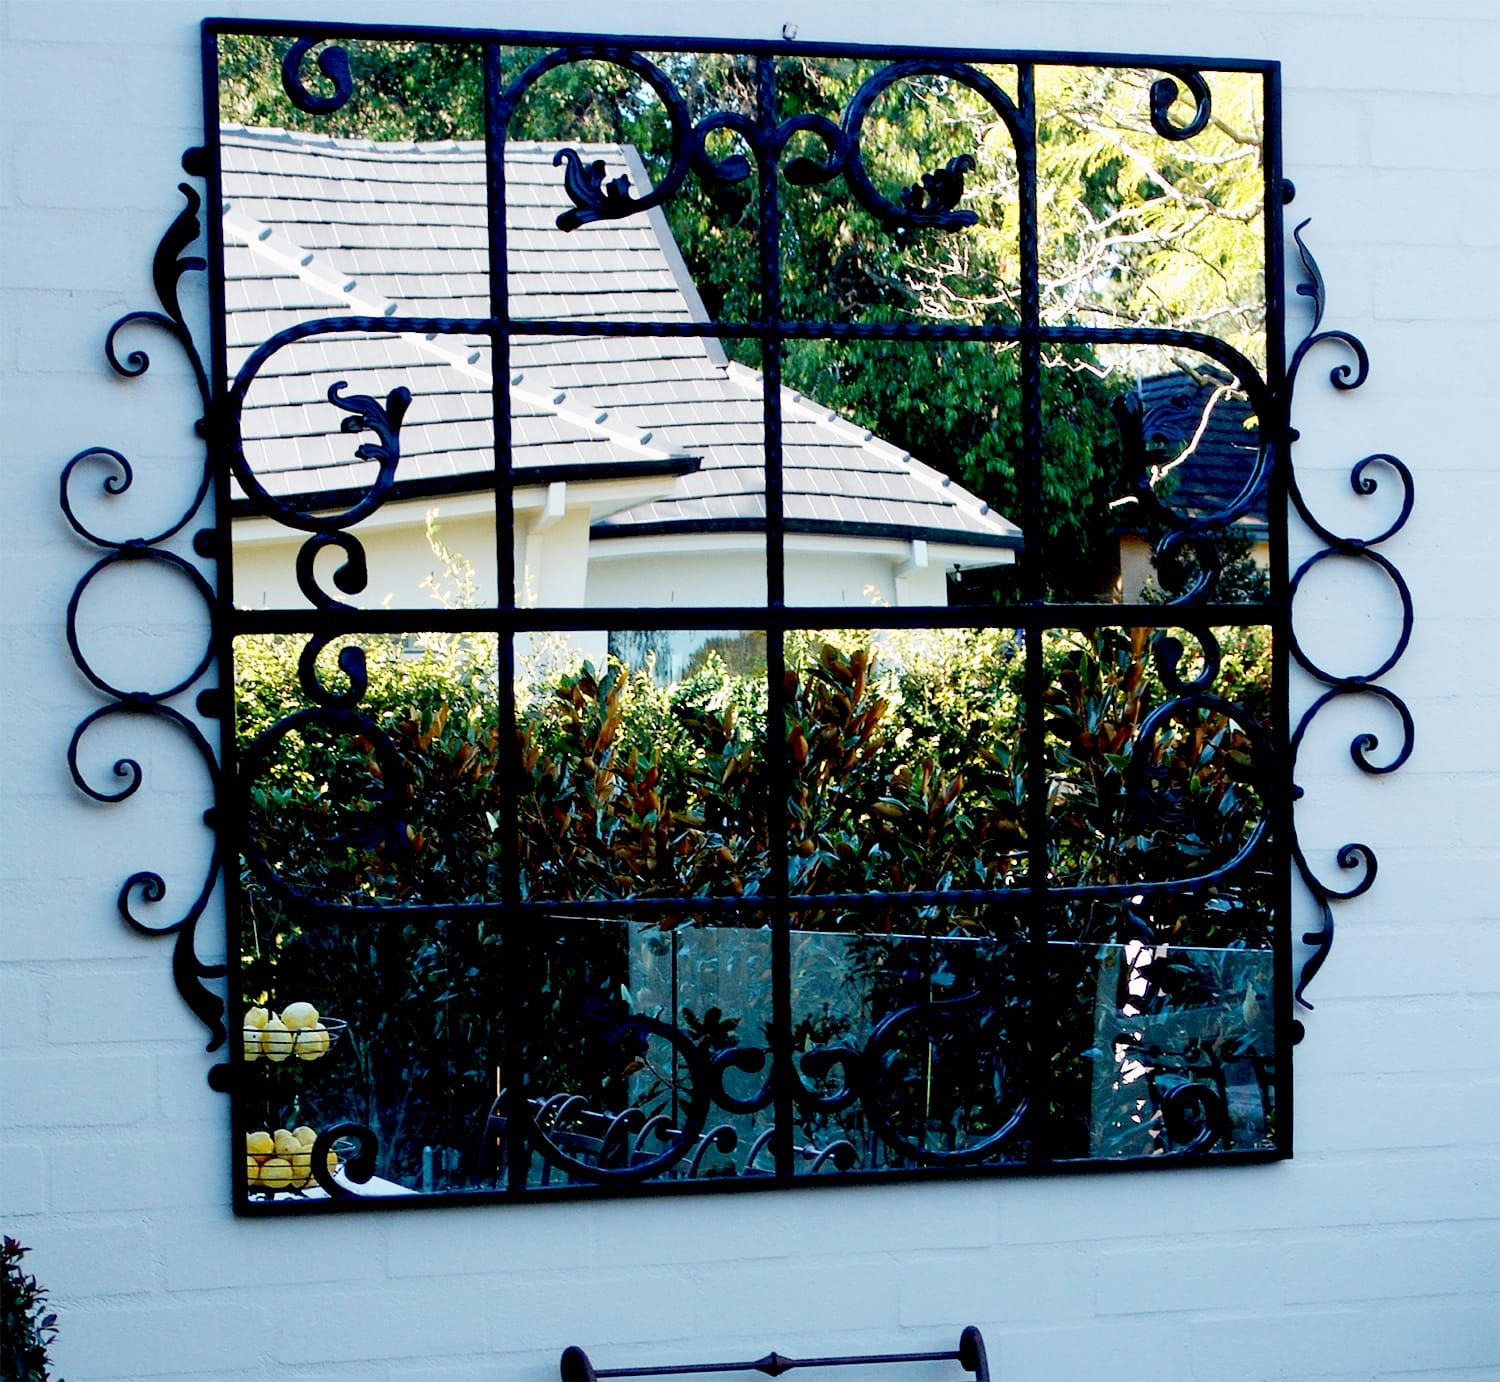 Scrolled Gate Outdoor Mirror Outdoor Mirrors